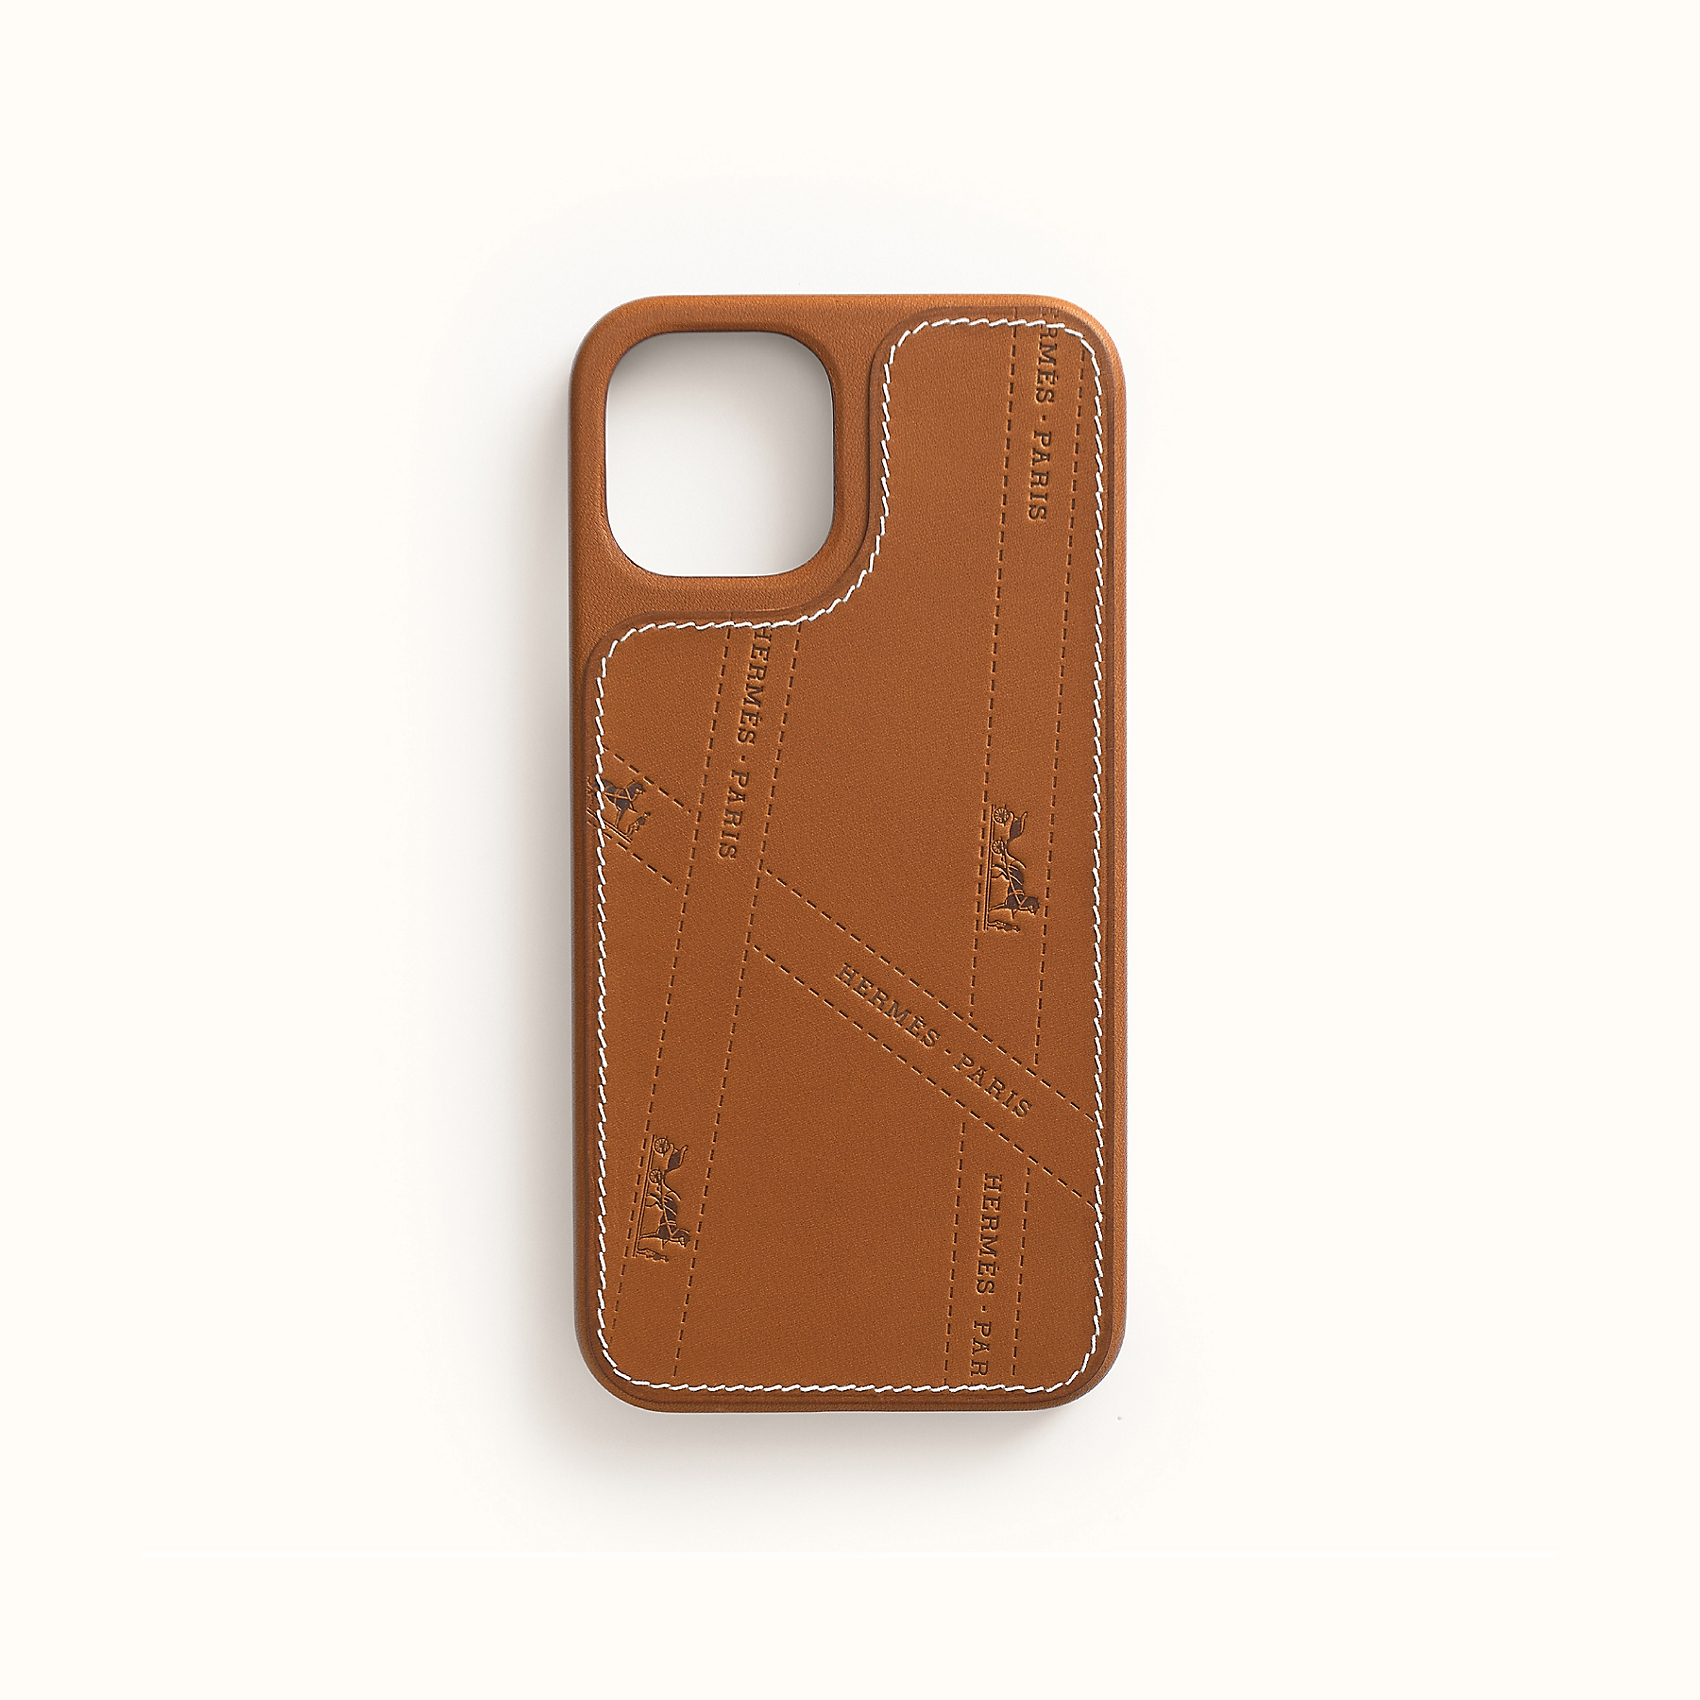 View: front, Hermes Bolduc case with MagSafe for iPhone 12 and iPhone 12 Pro